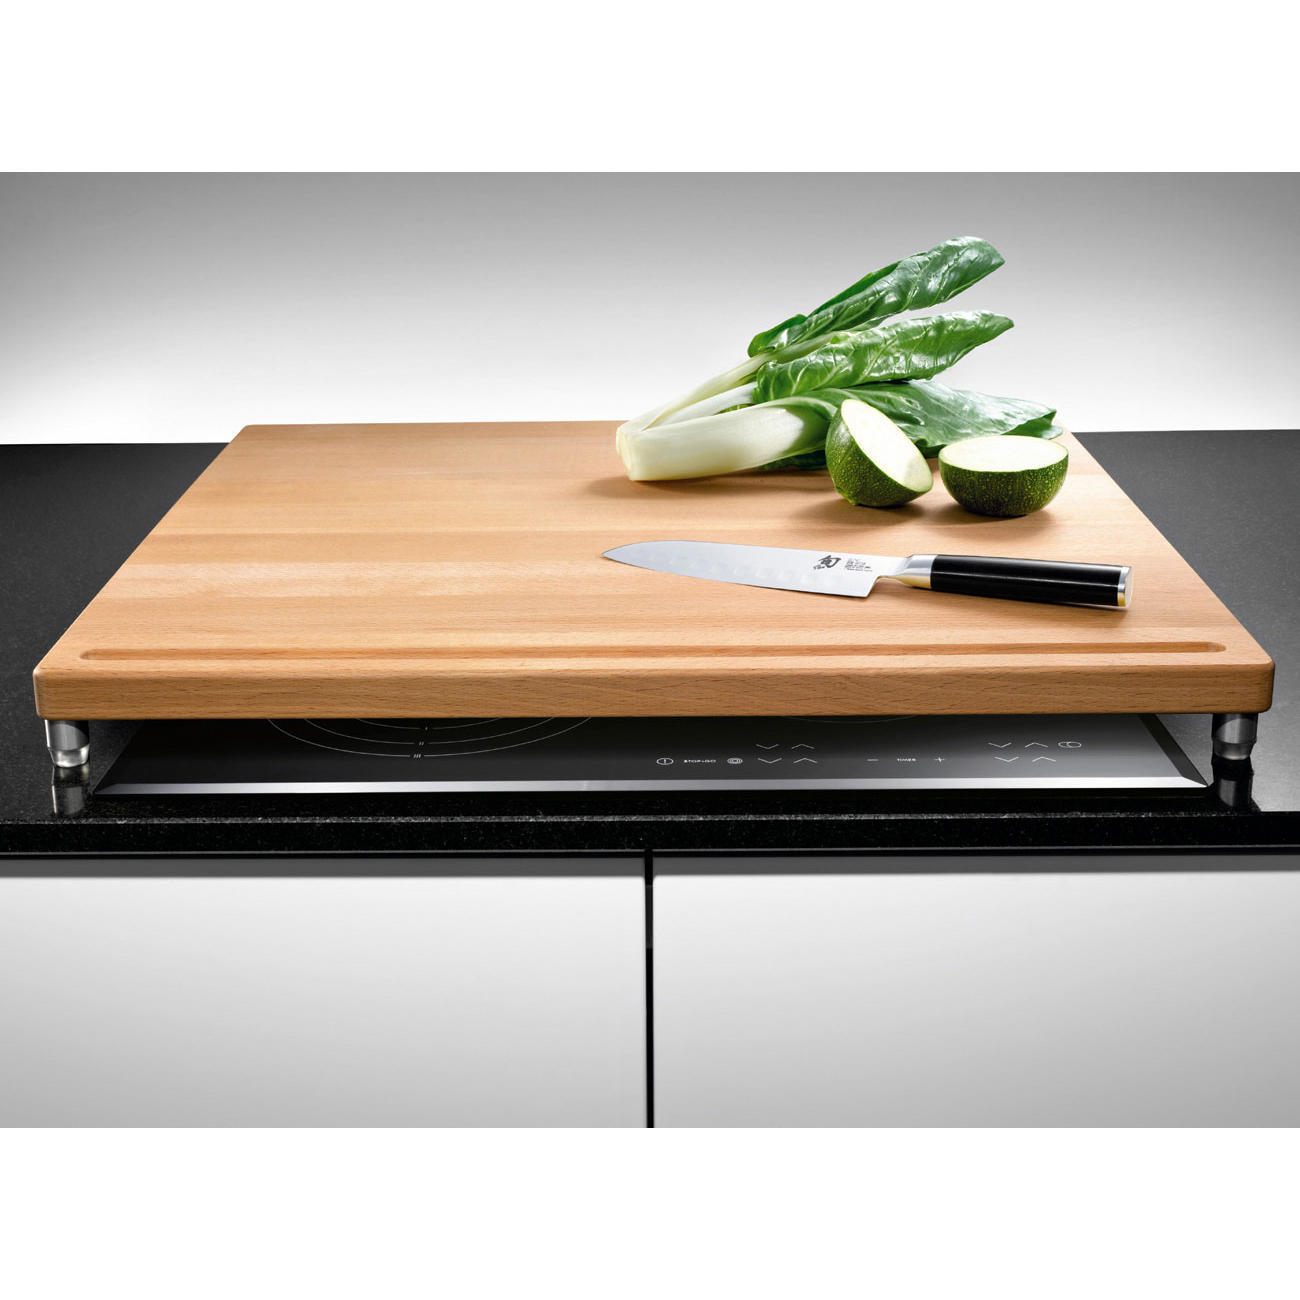 buy beech cover chopping board 3 year product guarantee. Black Bedroom Furniture Sets. Home Design Ideas